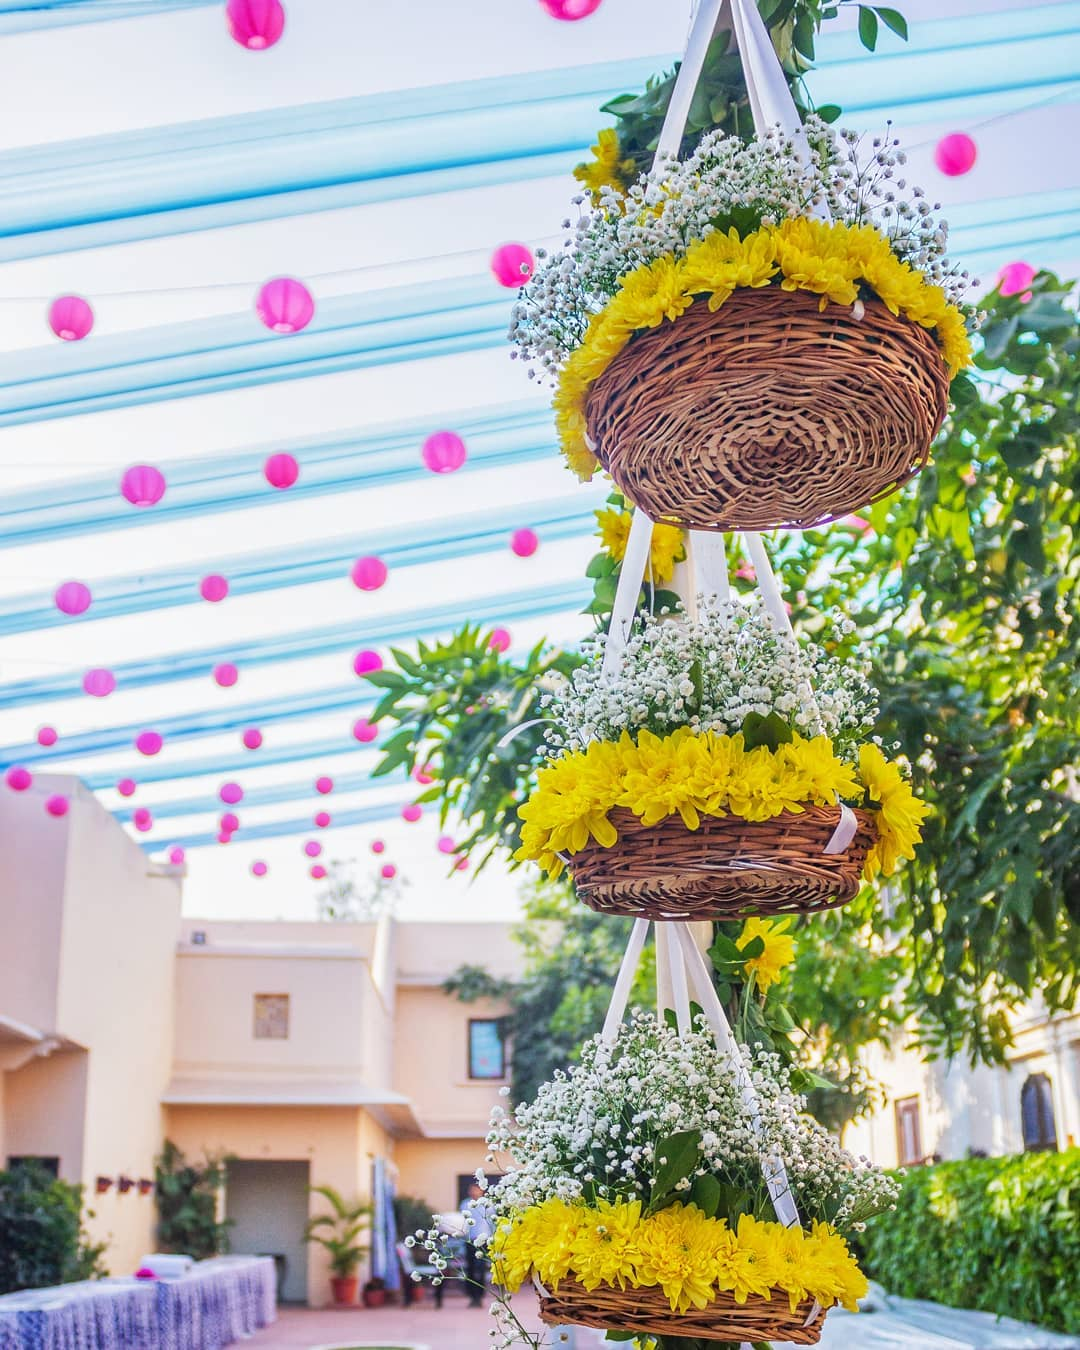 Flower basket mandap design: Simple & Stylish Decoration Ideas for Haldi Function